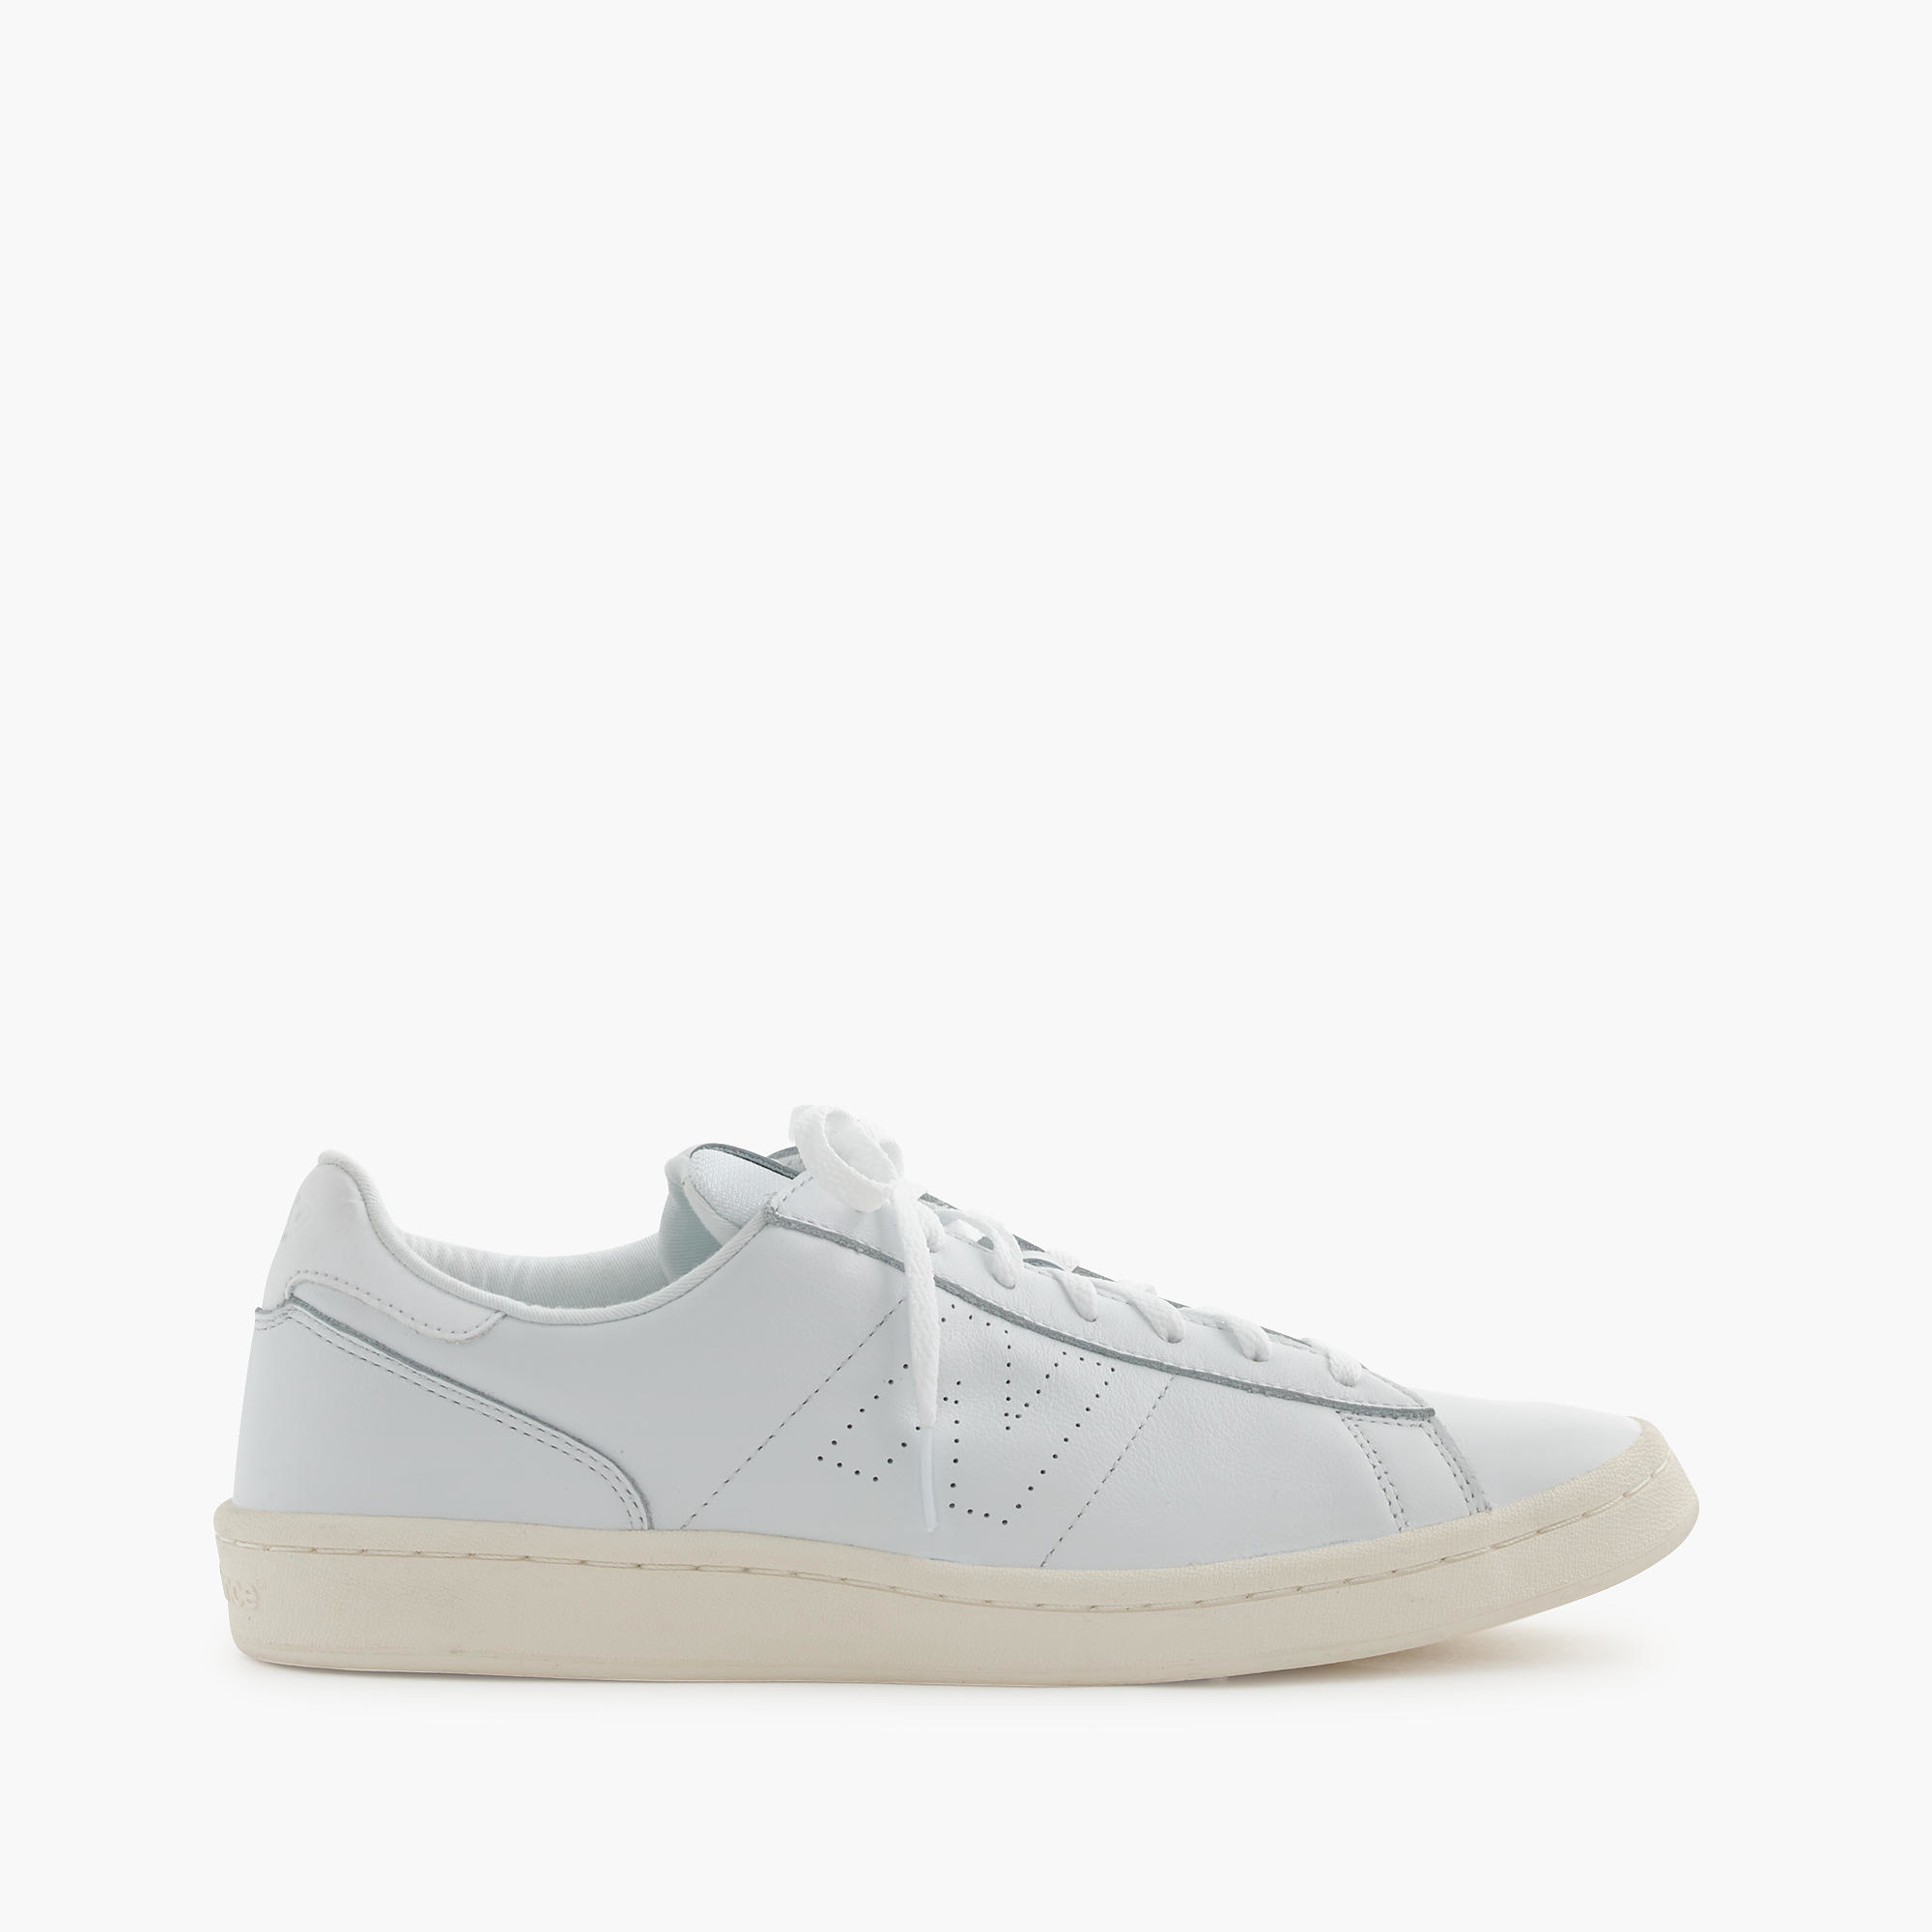 New Balance 791 Leather Low Top Sneakers In White For Men